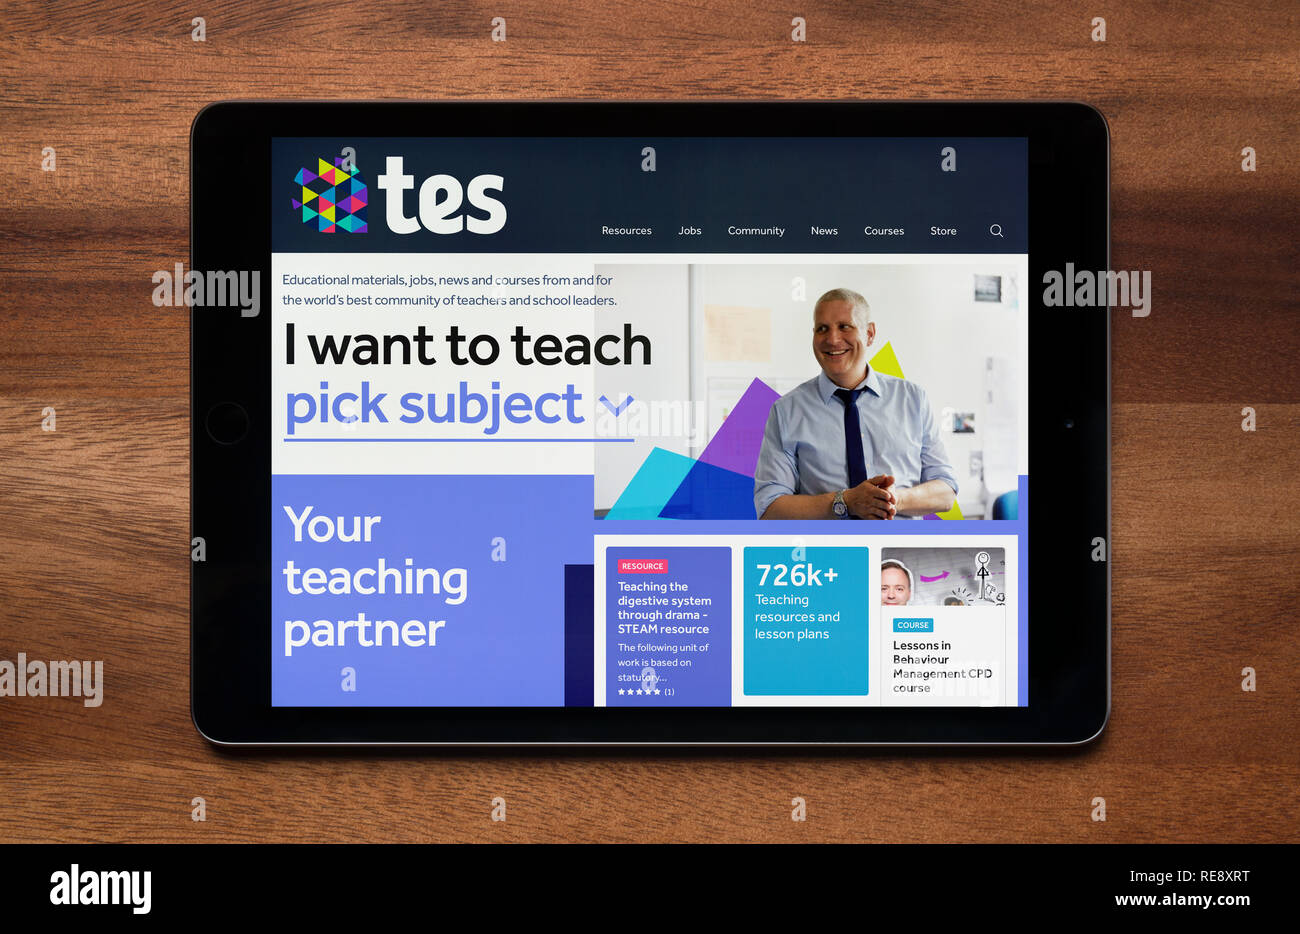 The website of TES (formerly Times Educational Supplement) is seen on an iPad tablet, which is resting on a wooden table (Editorial use only). - Stock Image